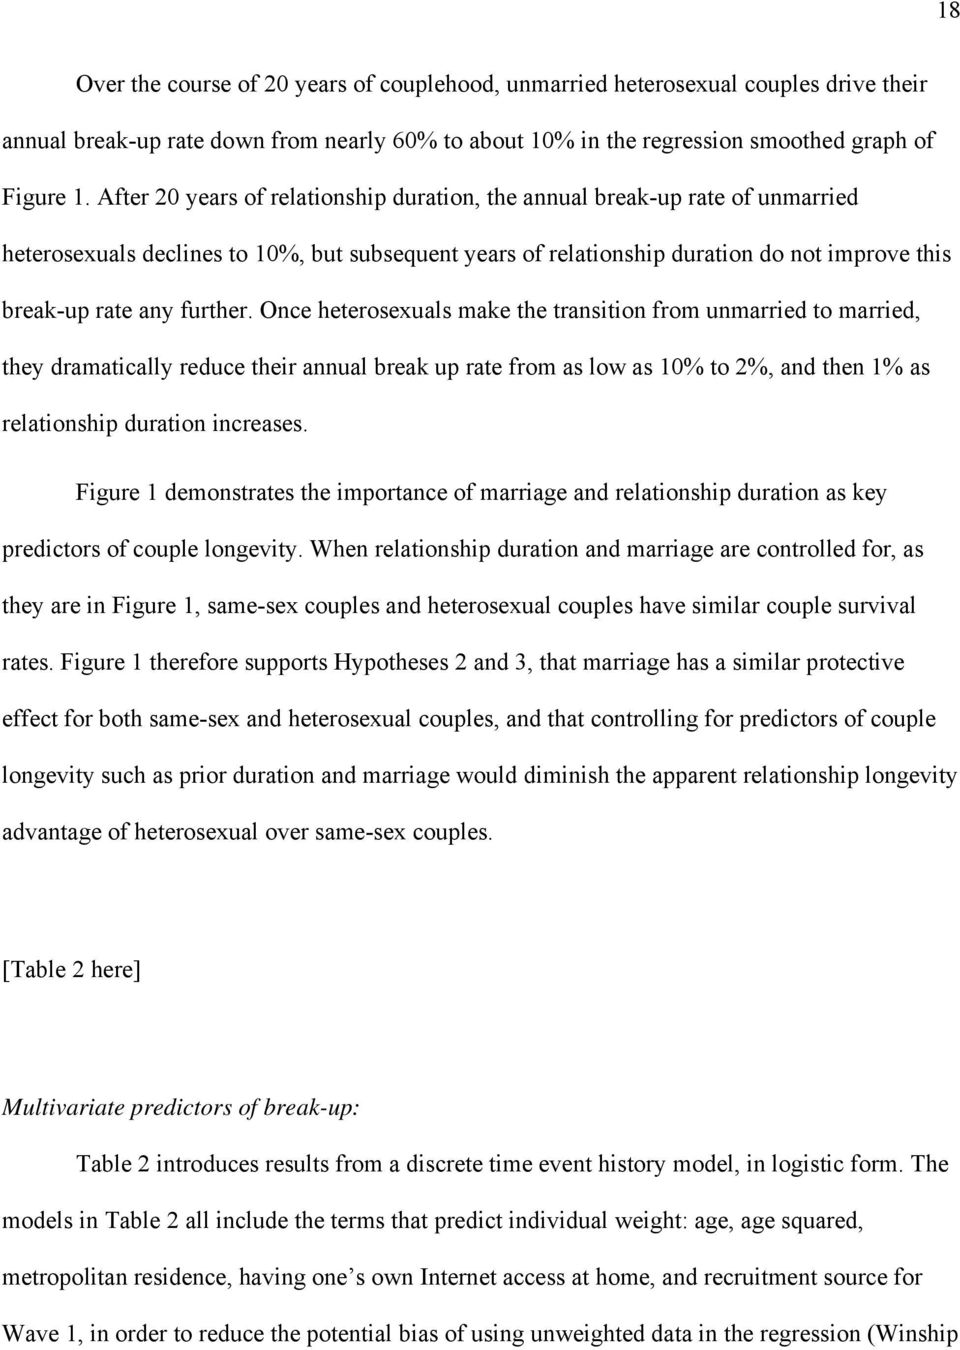 further. Once heterosexuals make the transition from unmarried to married, they dramatically reduce their annual break up rate from as low as 10% to 2%, and then 1% as relationship duration increases.